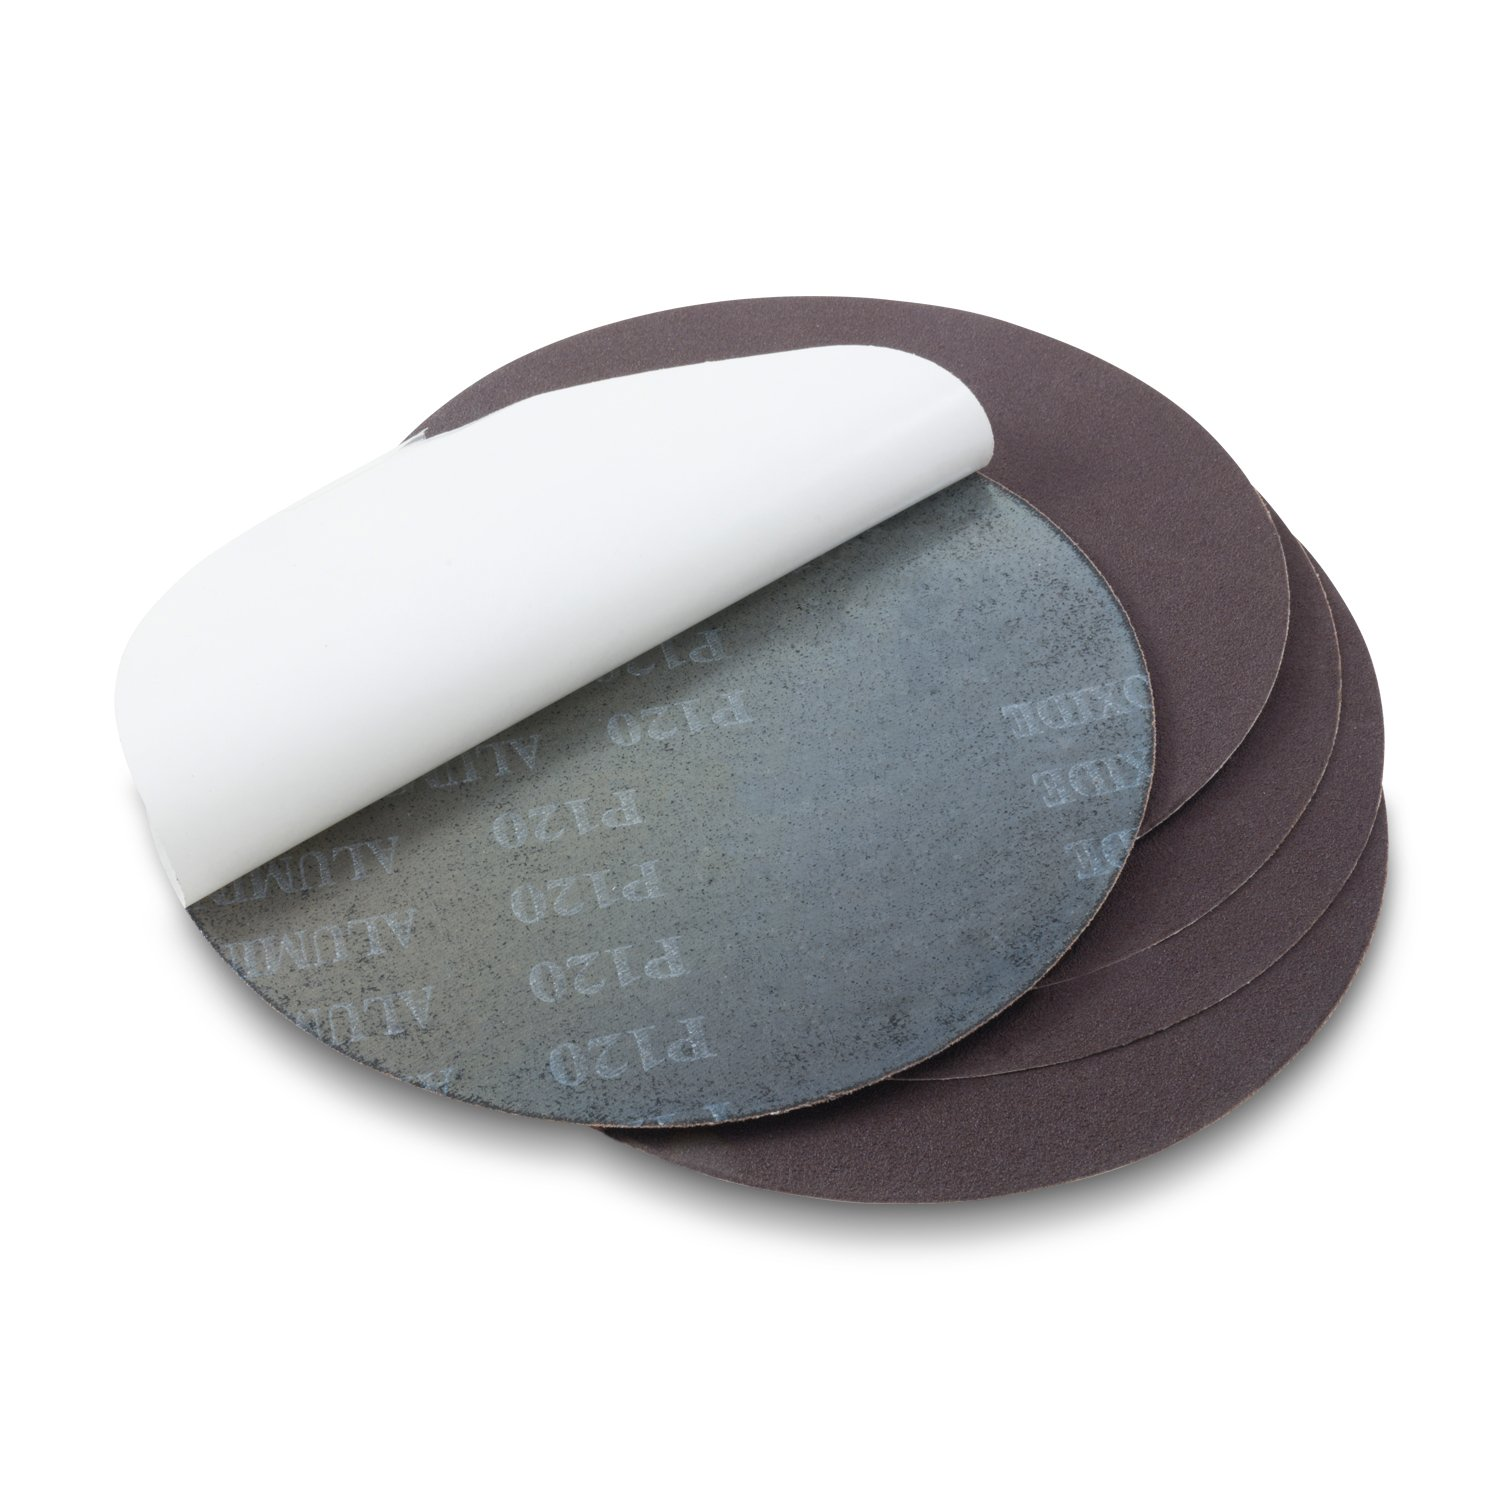 12 Inch 100 Grit Adhesive Back Aluminum Oxide metal Sanding Discs, 5 Pack